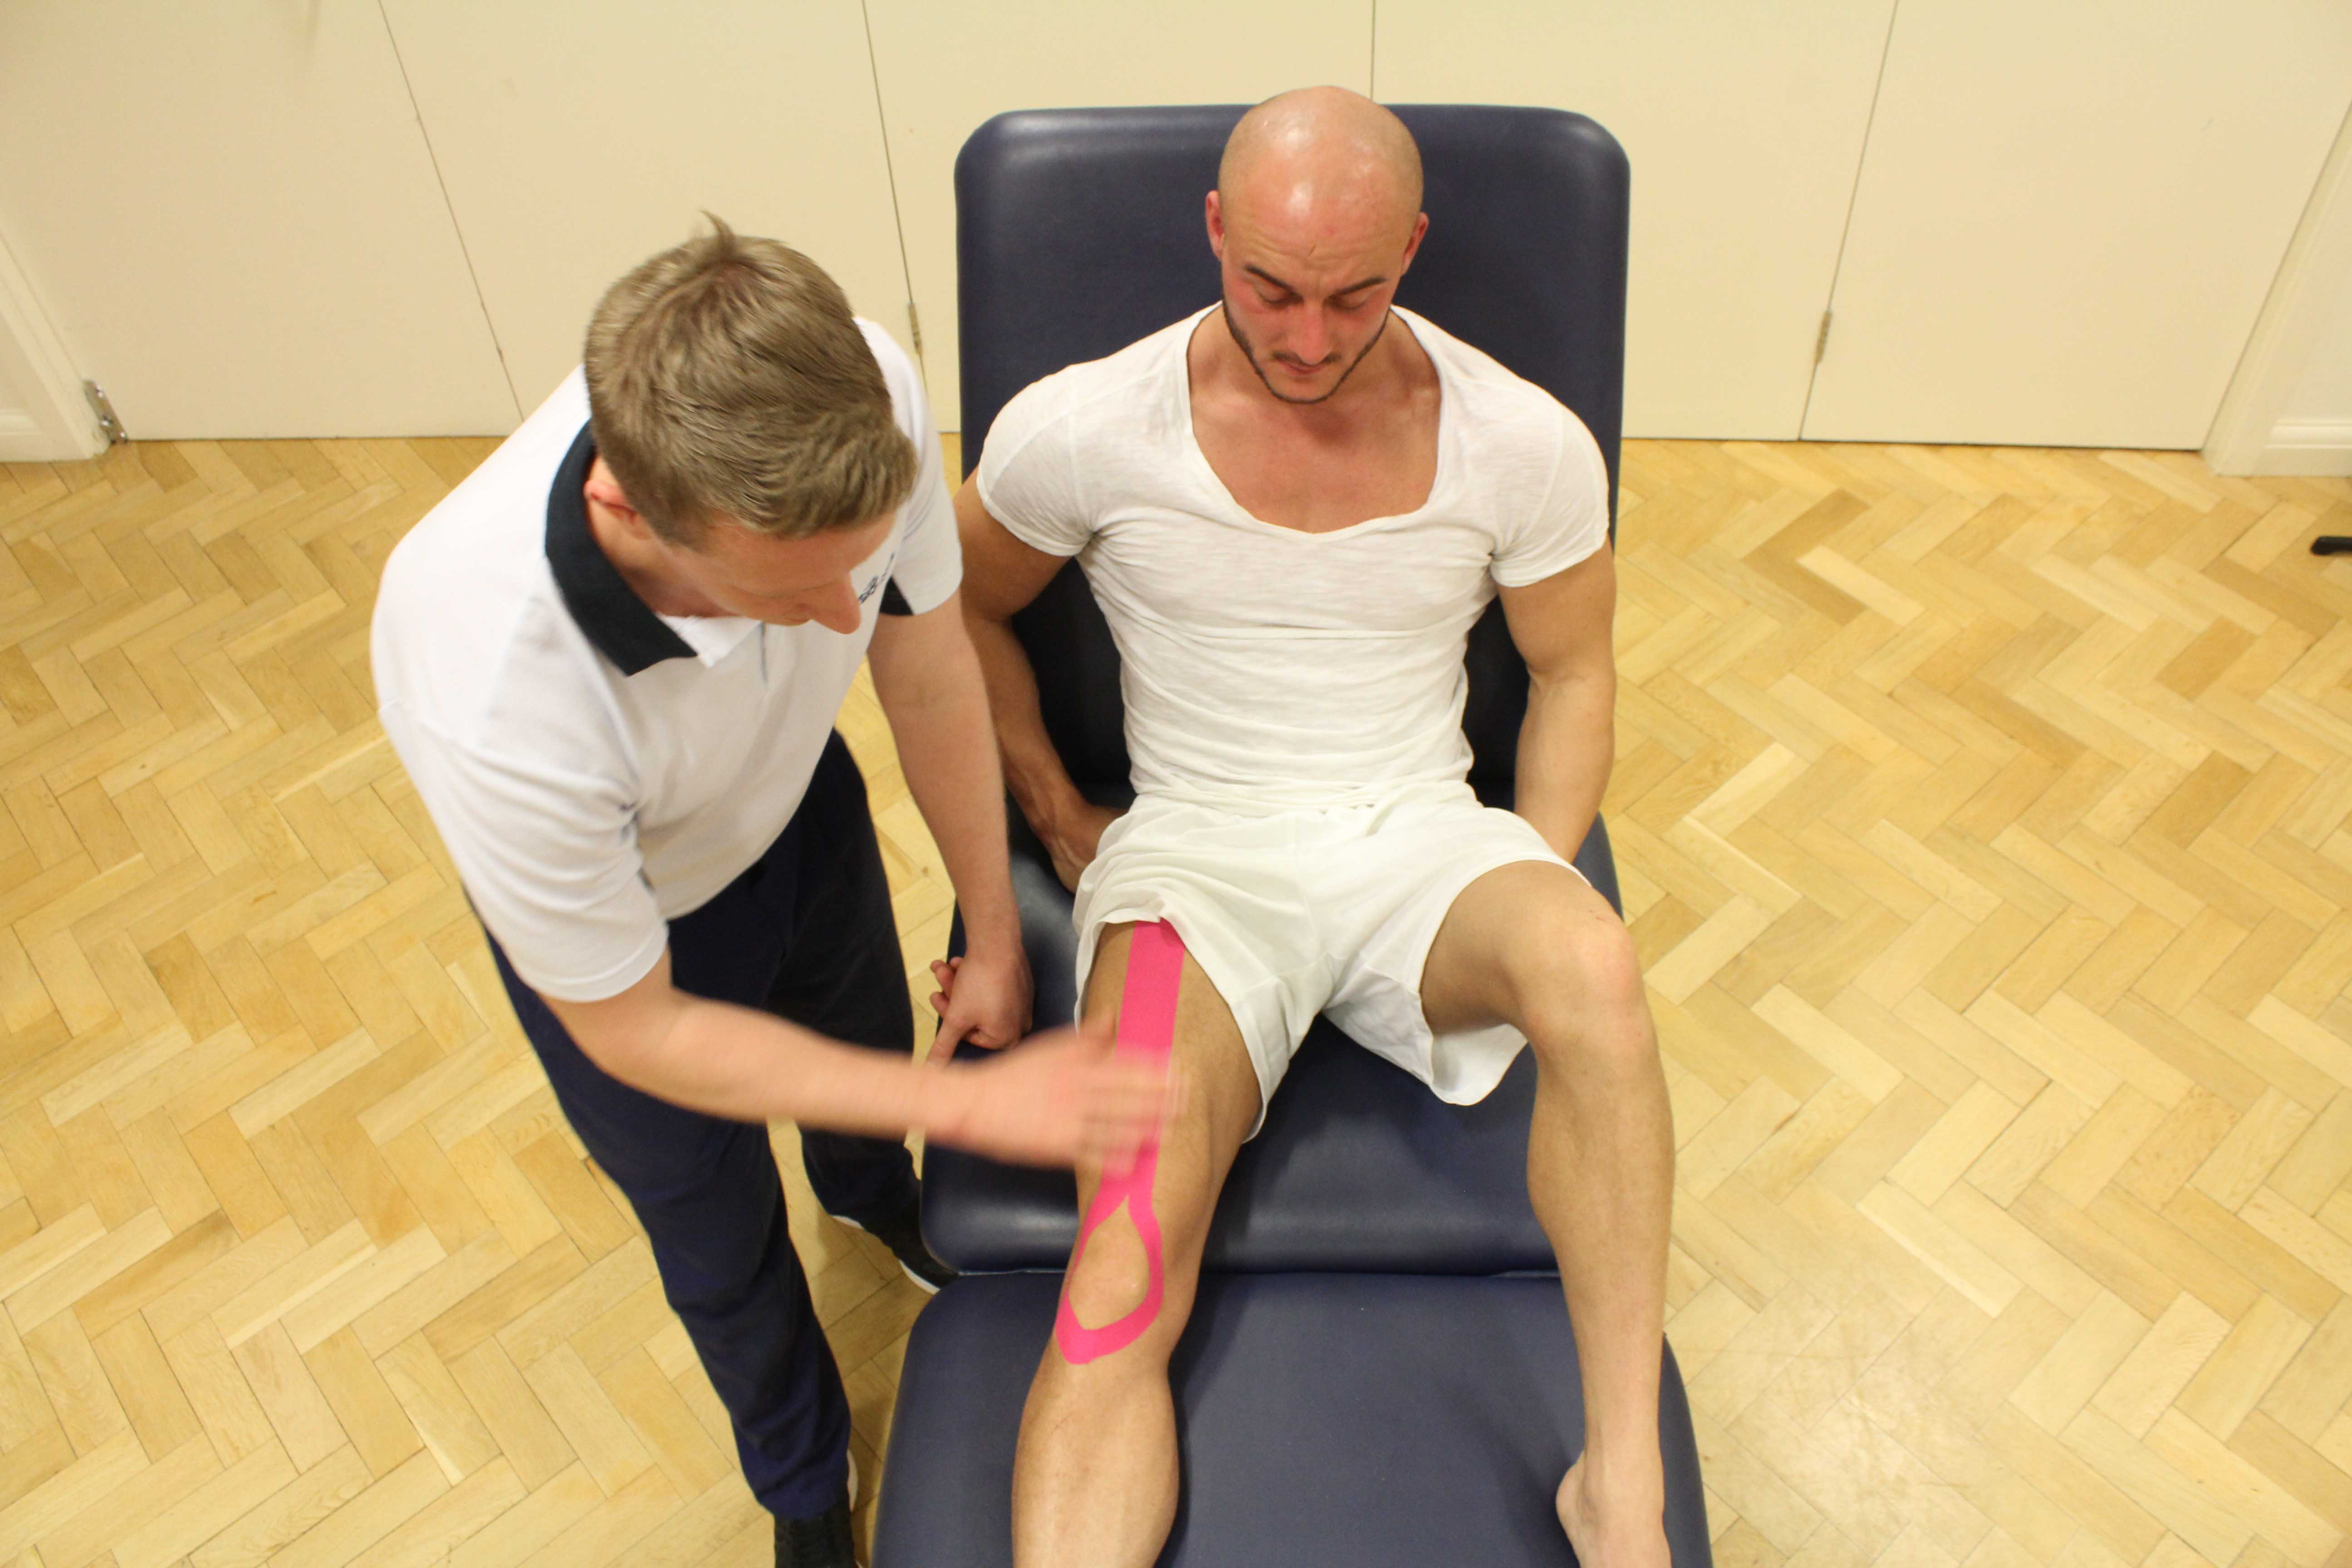 Specialist physiotherapist applying supportive tape to the knee